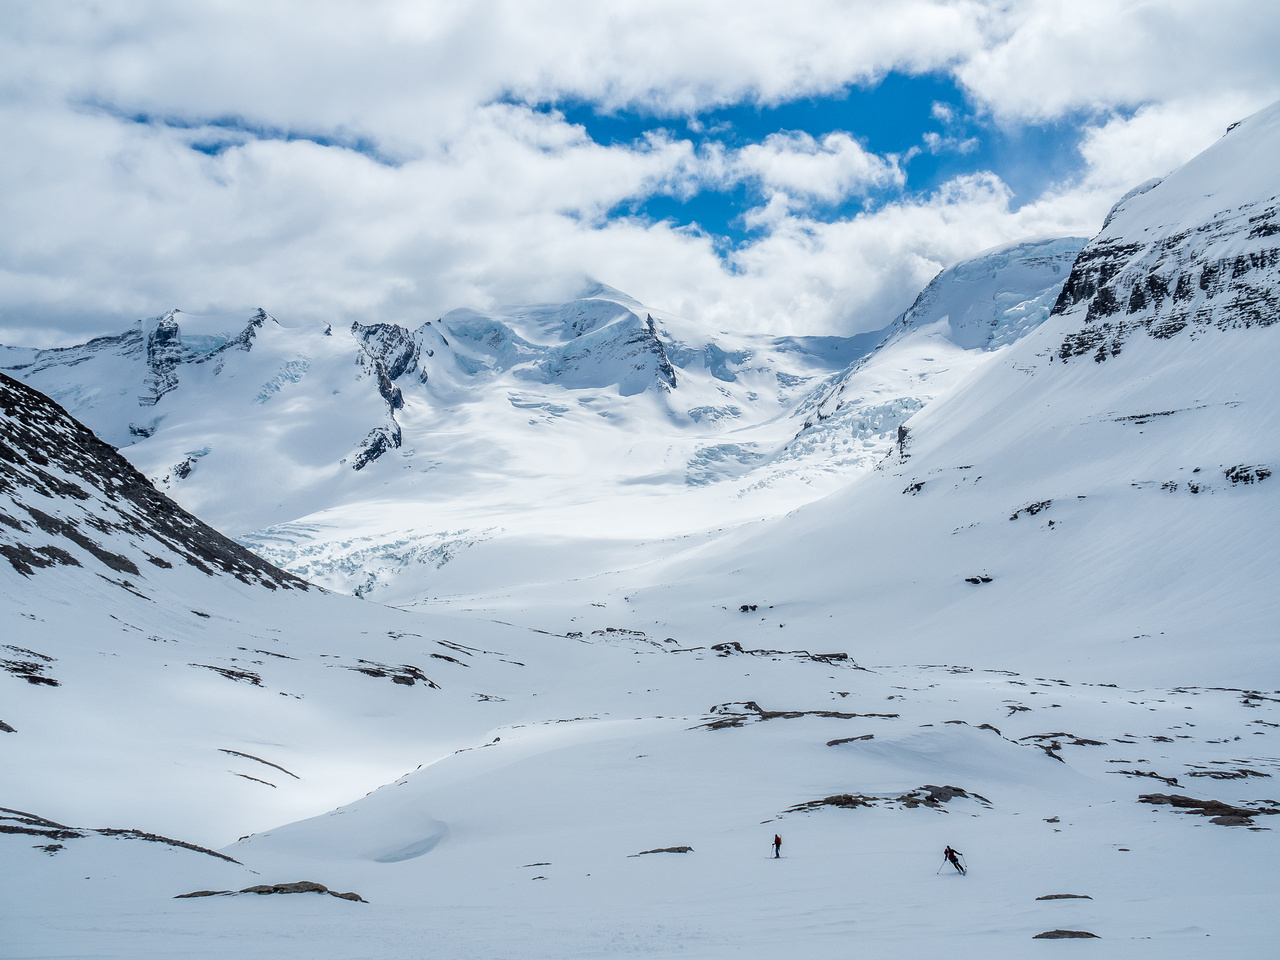 Mike skis towards Ben with Resplendent and the Robson Glacier in the background providing a dramatic scene.